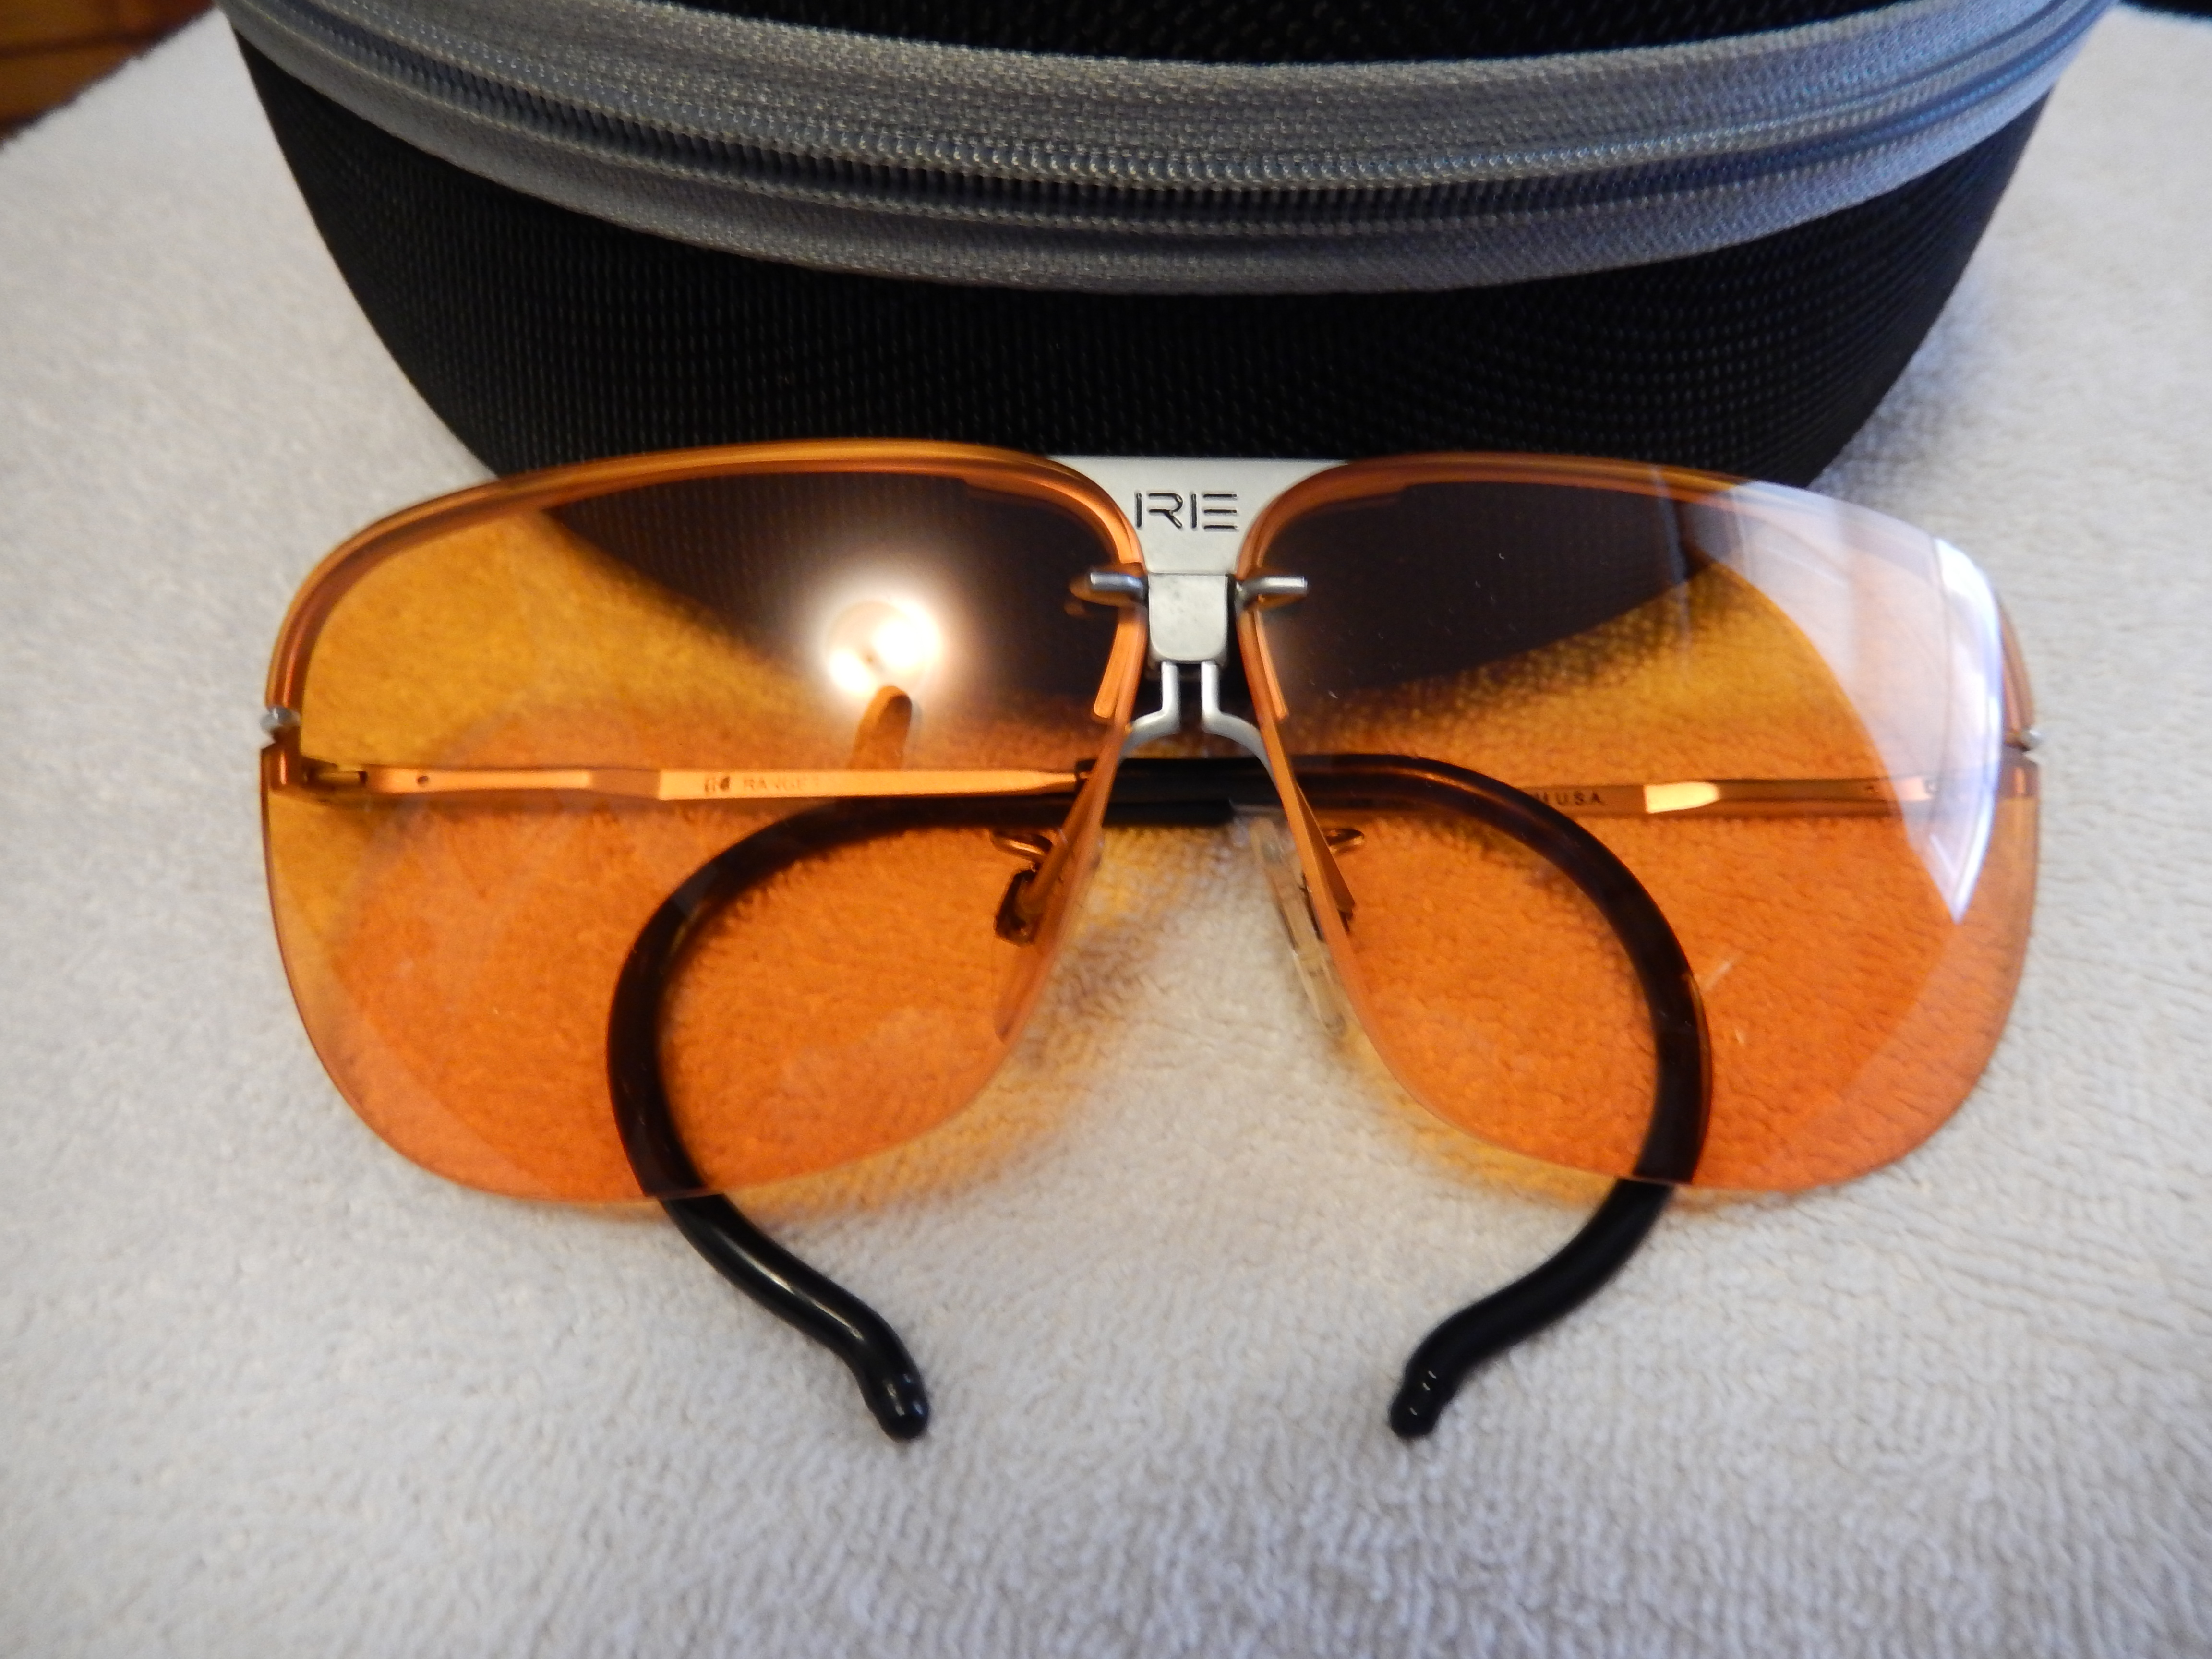 0ea875f2978f For Sale - Ranger shooting glasses+6 lens | Trap Shooters Forum